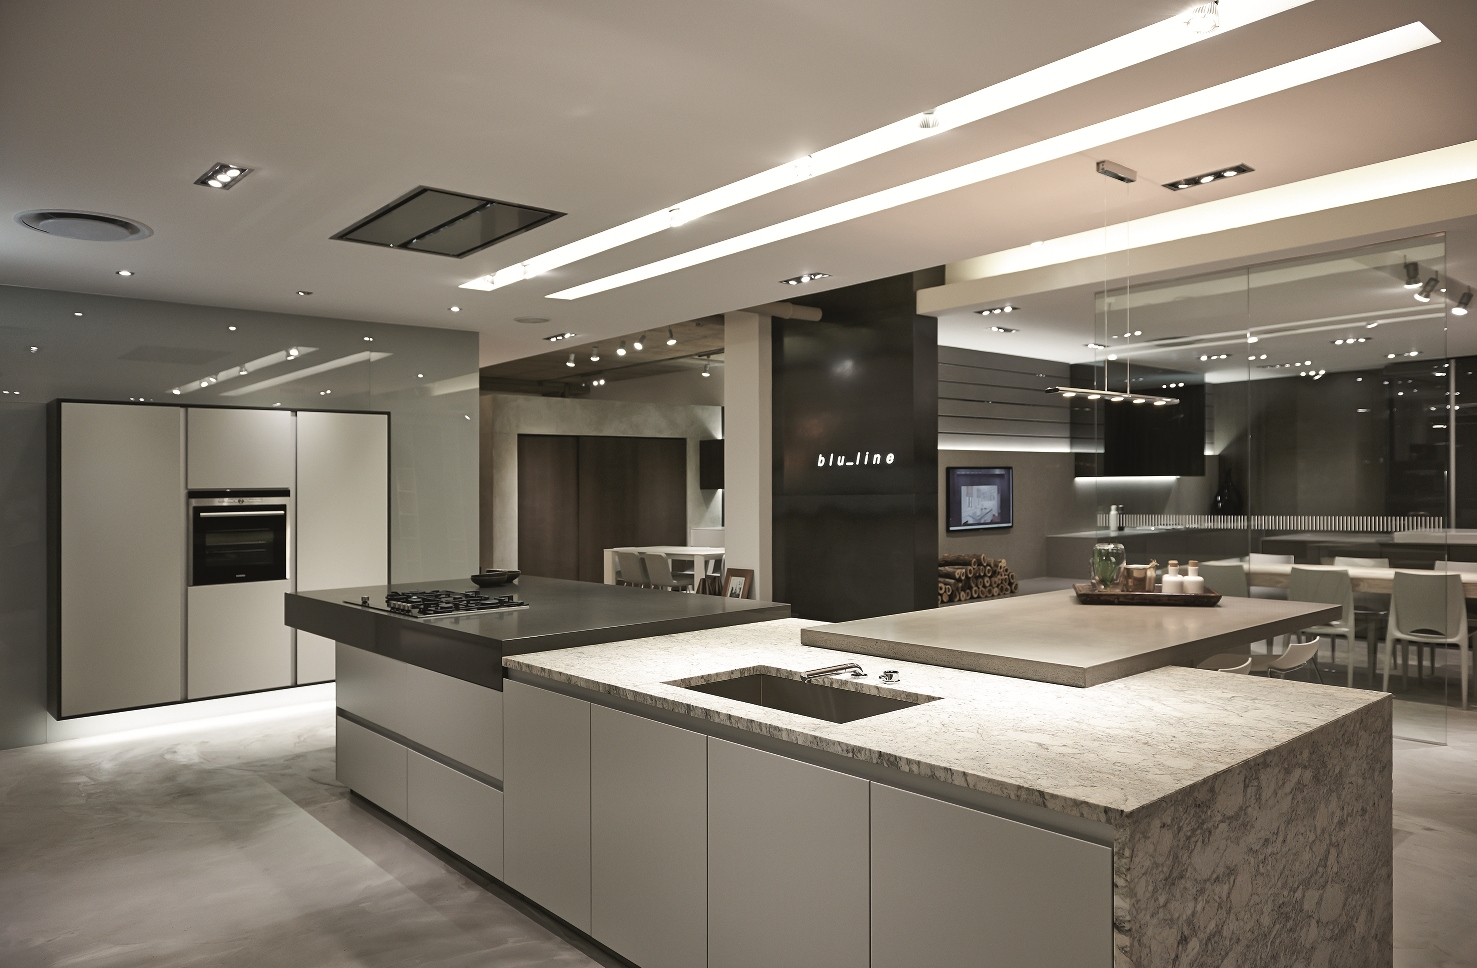 Kitchen showroom design ideas with images for Kitchen design showroom